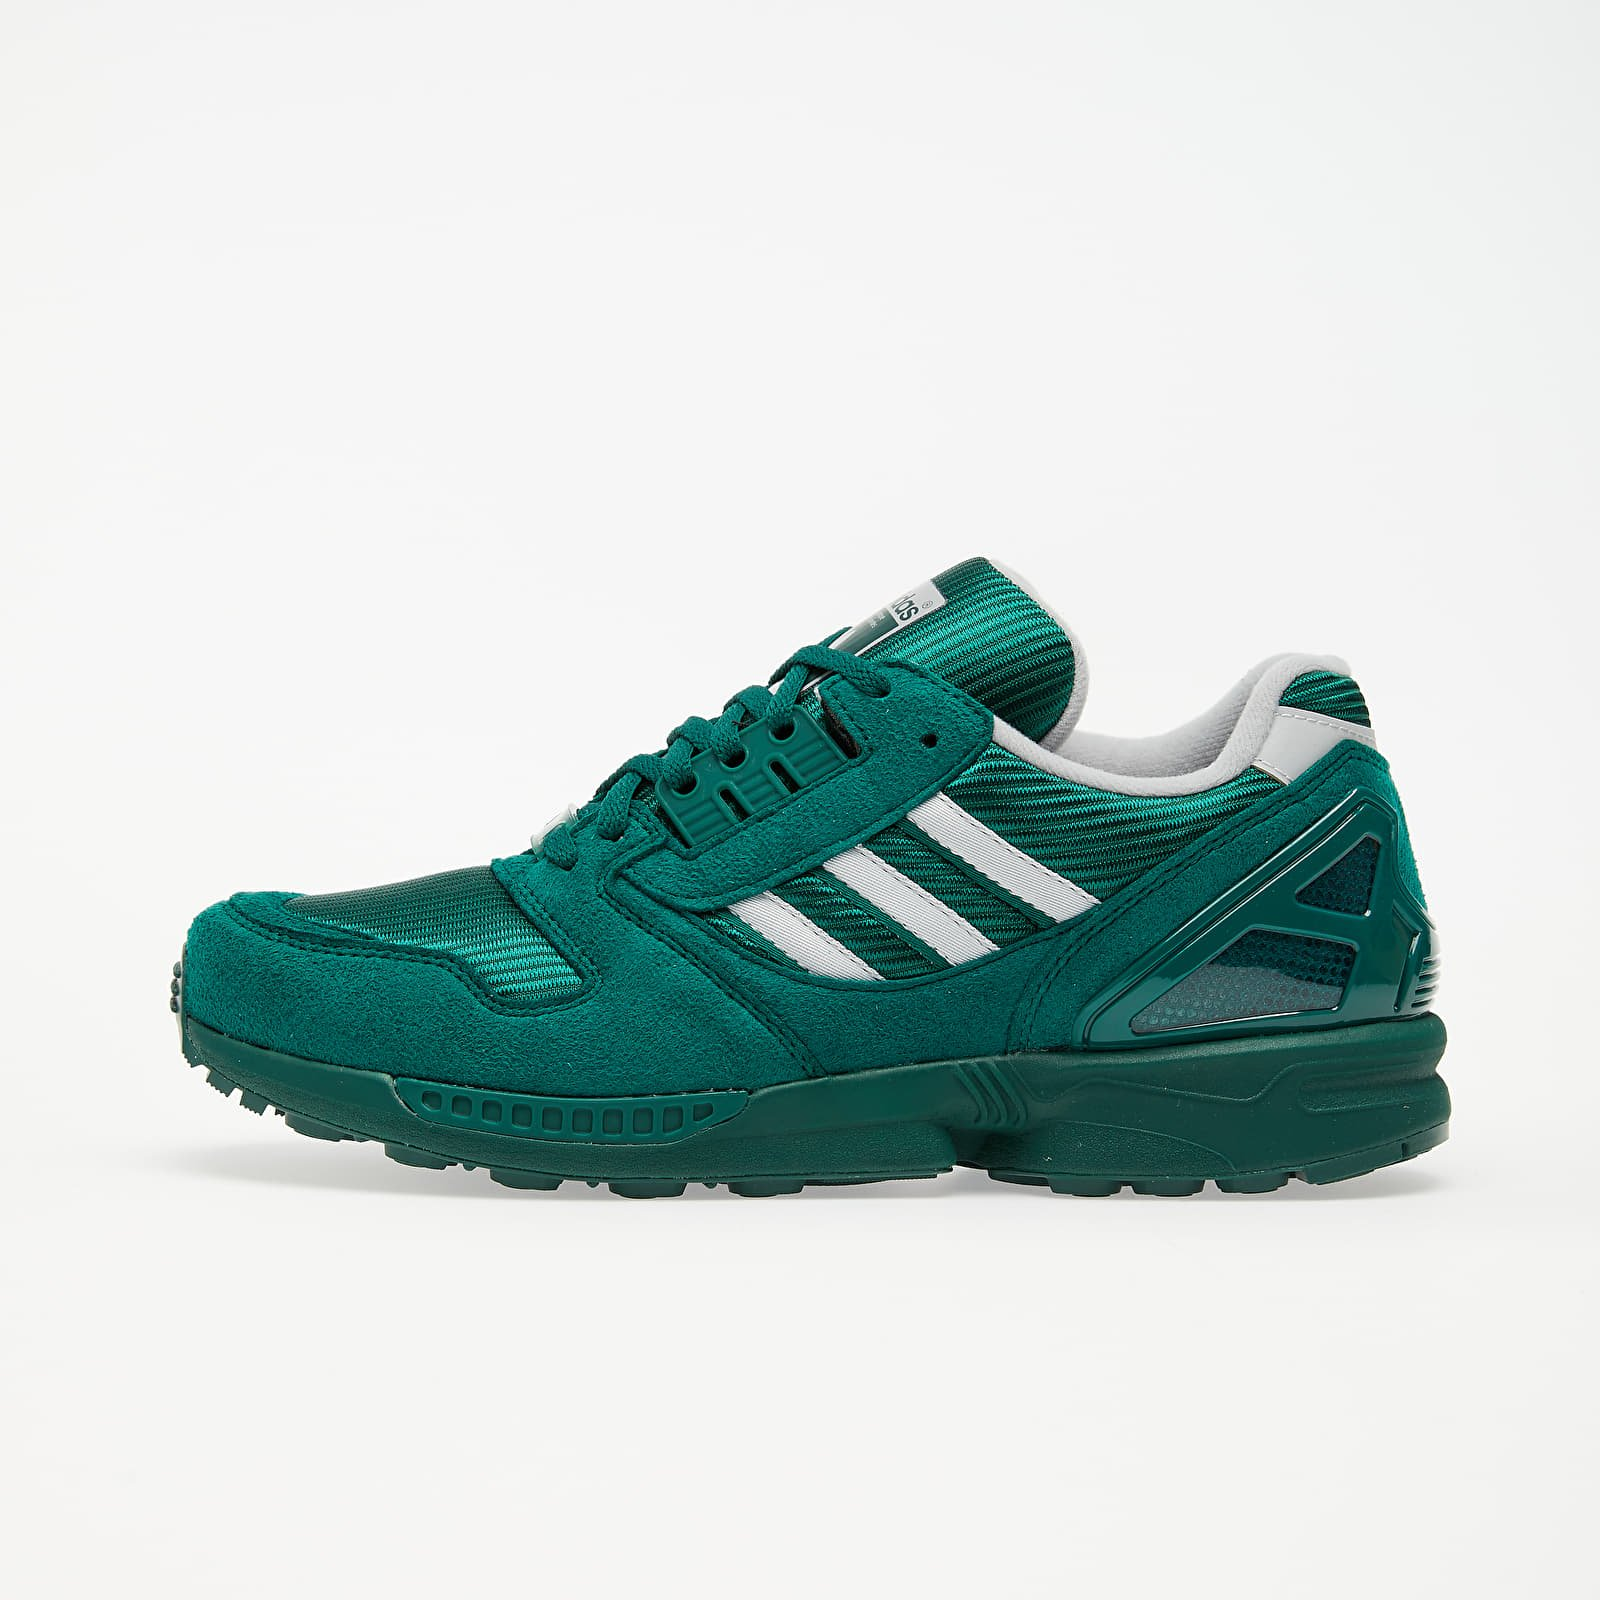 Men's shoes adidas ZX 8000 Core Green/ Grey Two/ Ftw White